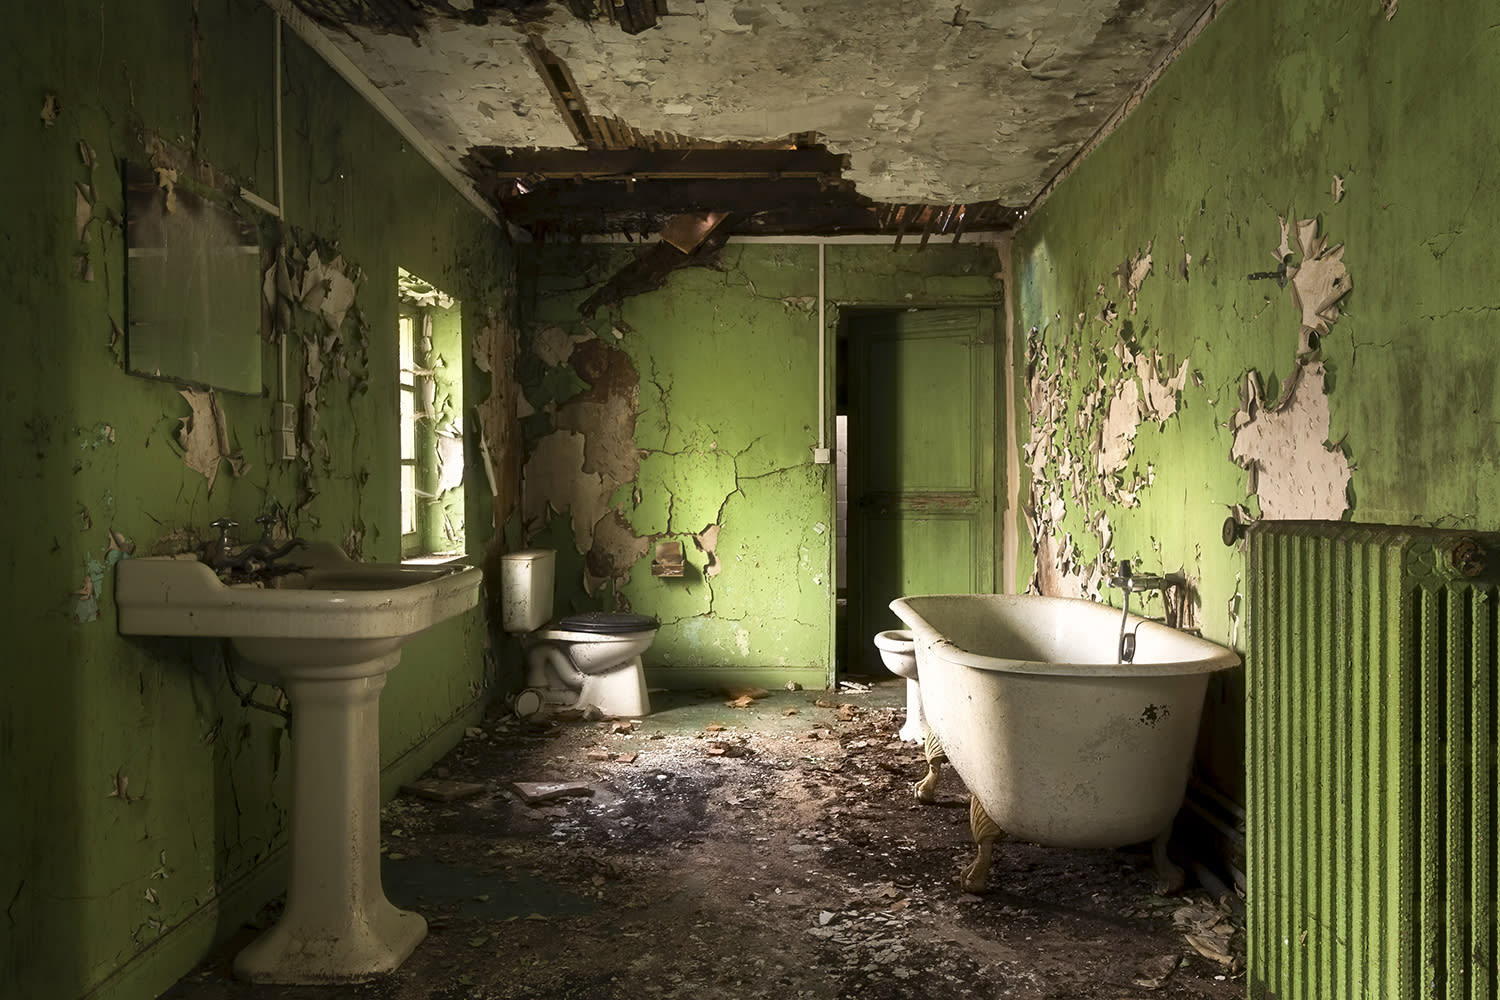 <p>Roman Robroek, 30, a Dutch photographer, traveled all over France to capture the beauty of these decaying buildings. (Photo: Roman Robroek/Caters News) </p>